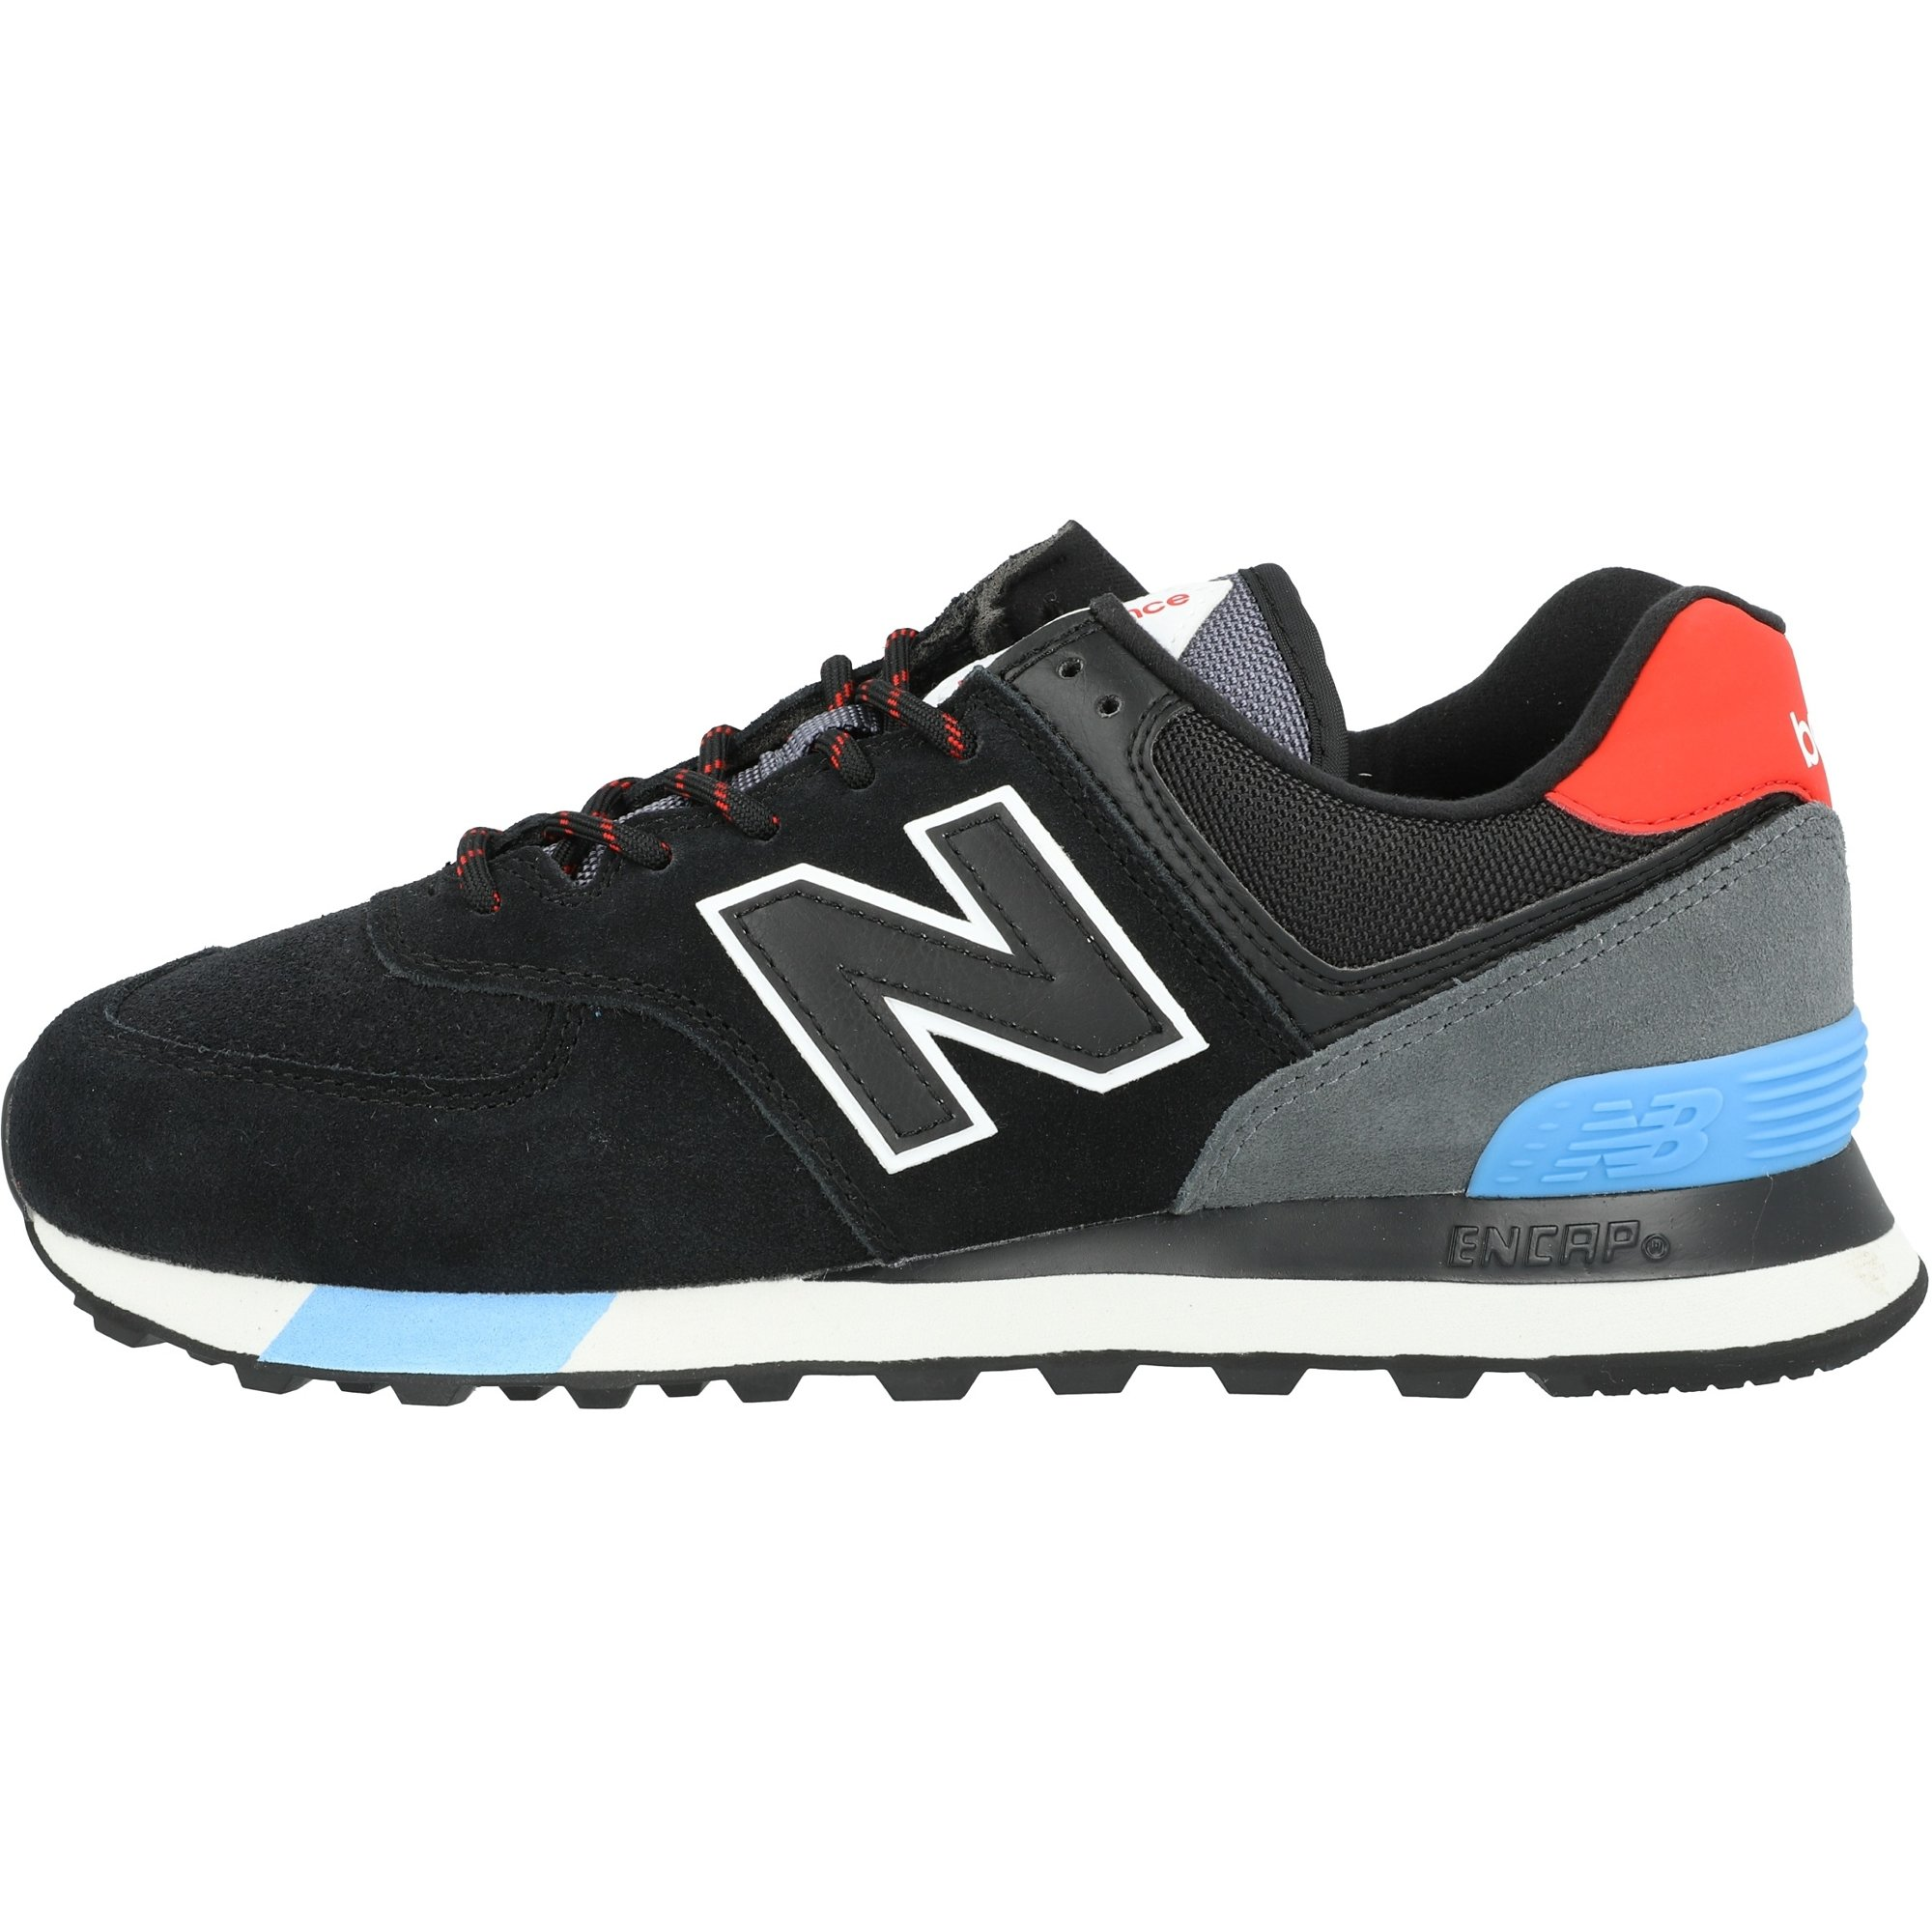 New Balance 574 Black/Velocity Red Suede Adult